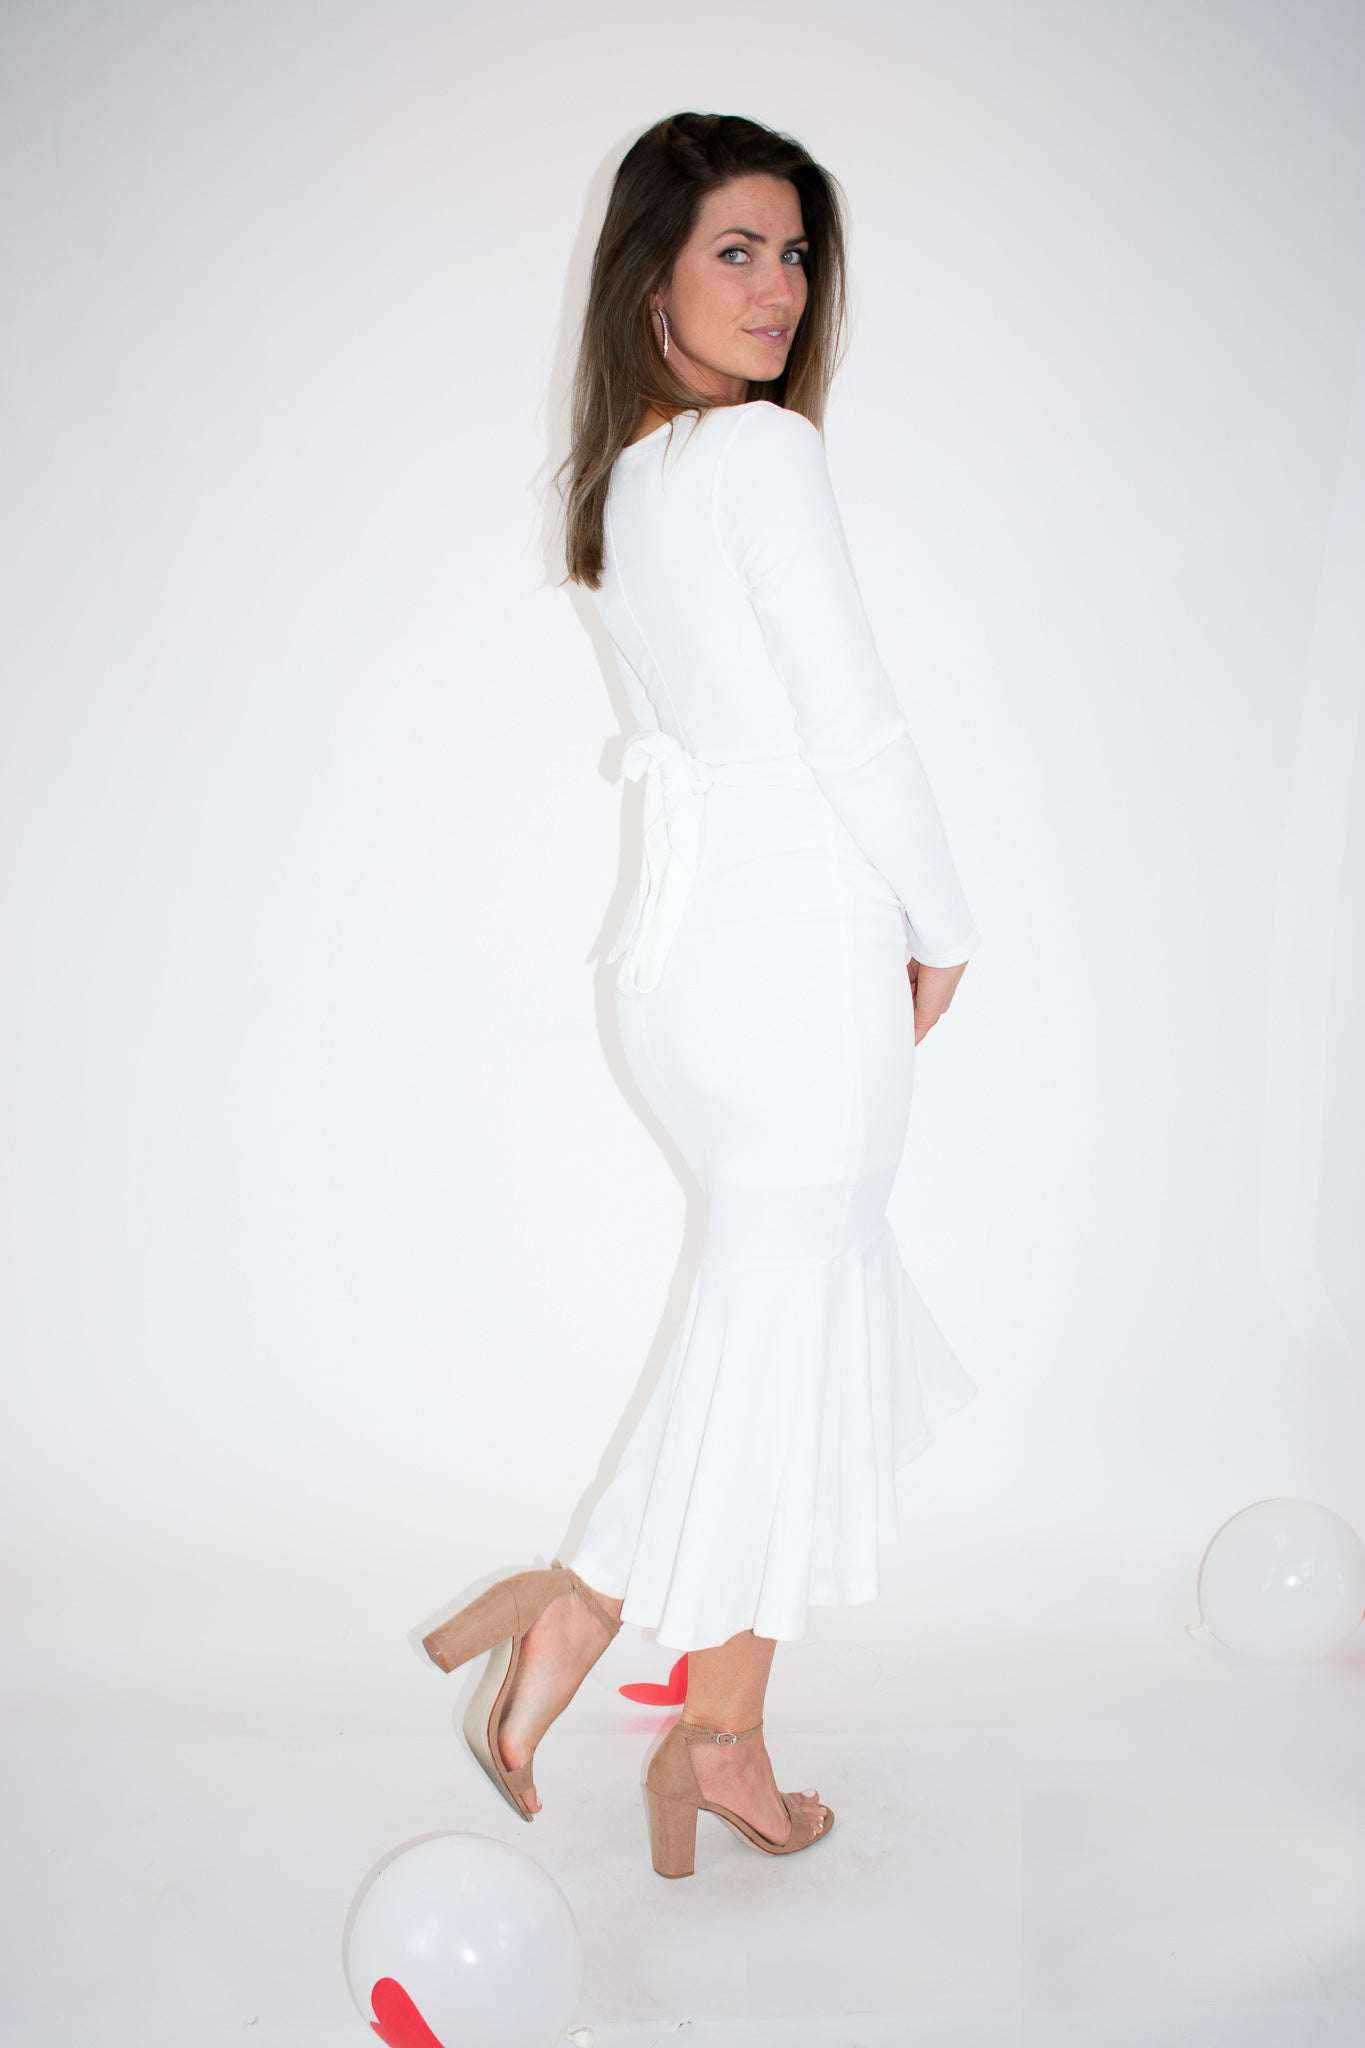 WHITE RUFFLE HEM DRESS / FINAL CLEARANCE